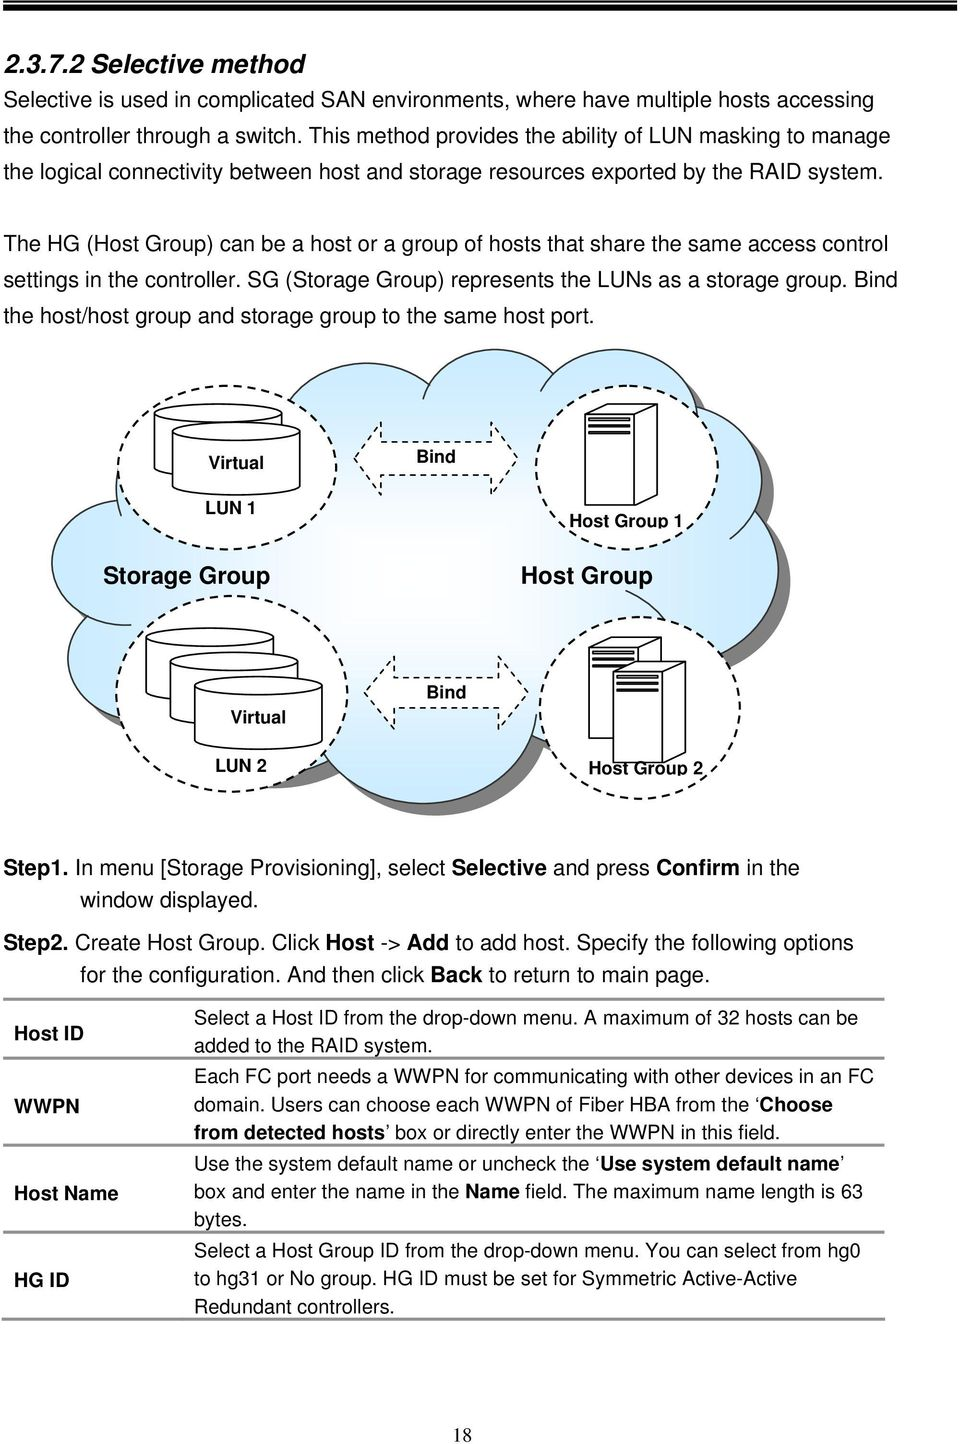 The HG (Host Group) can be a host or a group of hosts that share the same access control settings in the controller. SG (Storage Group) represents the LUNs as a storage group.